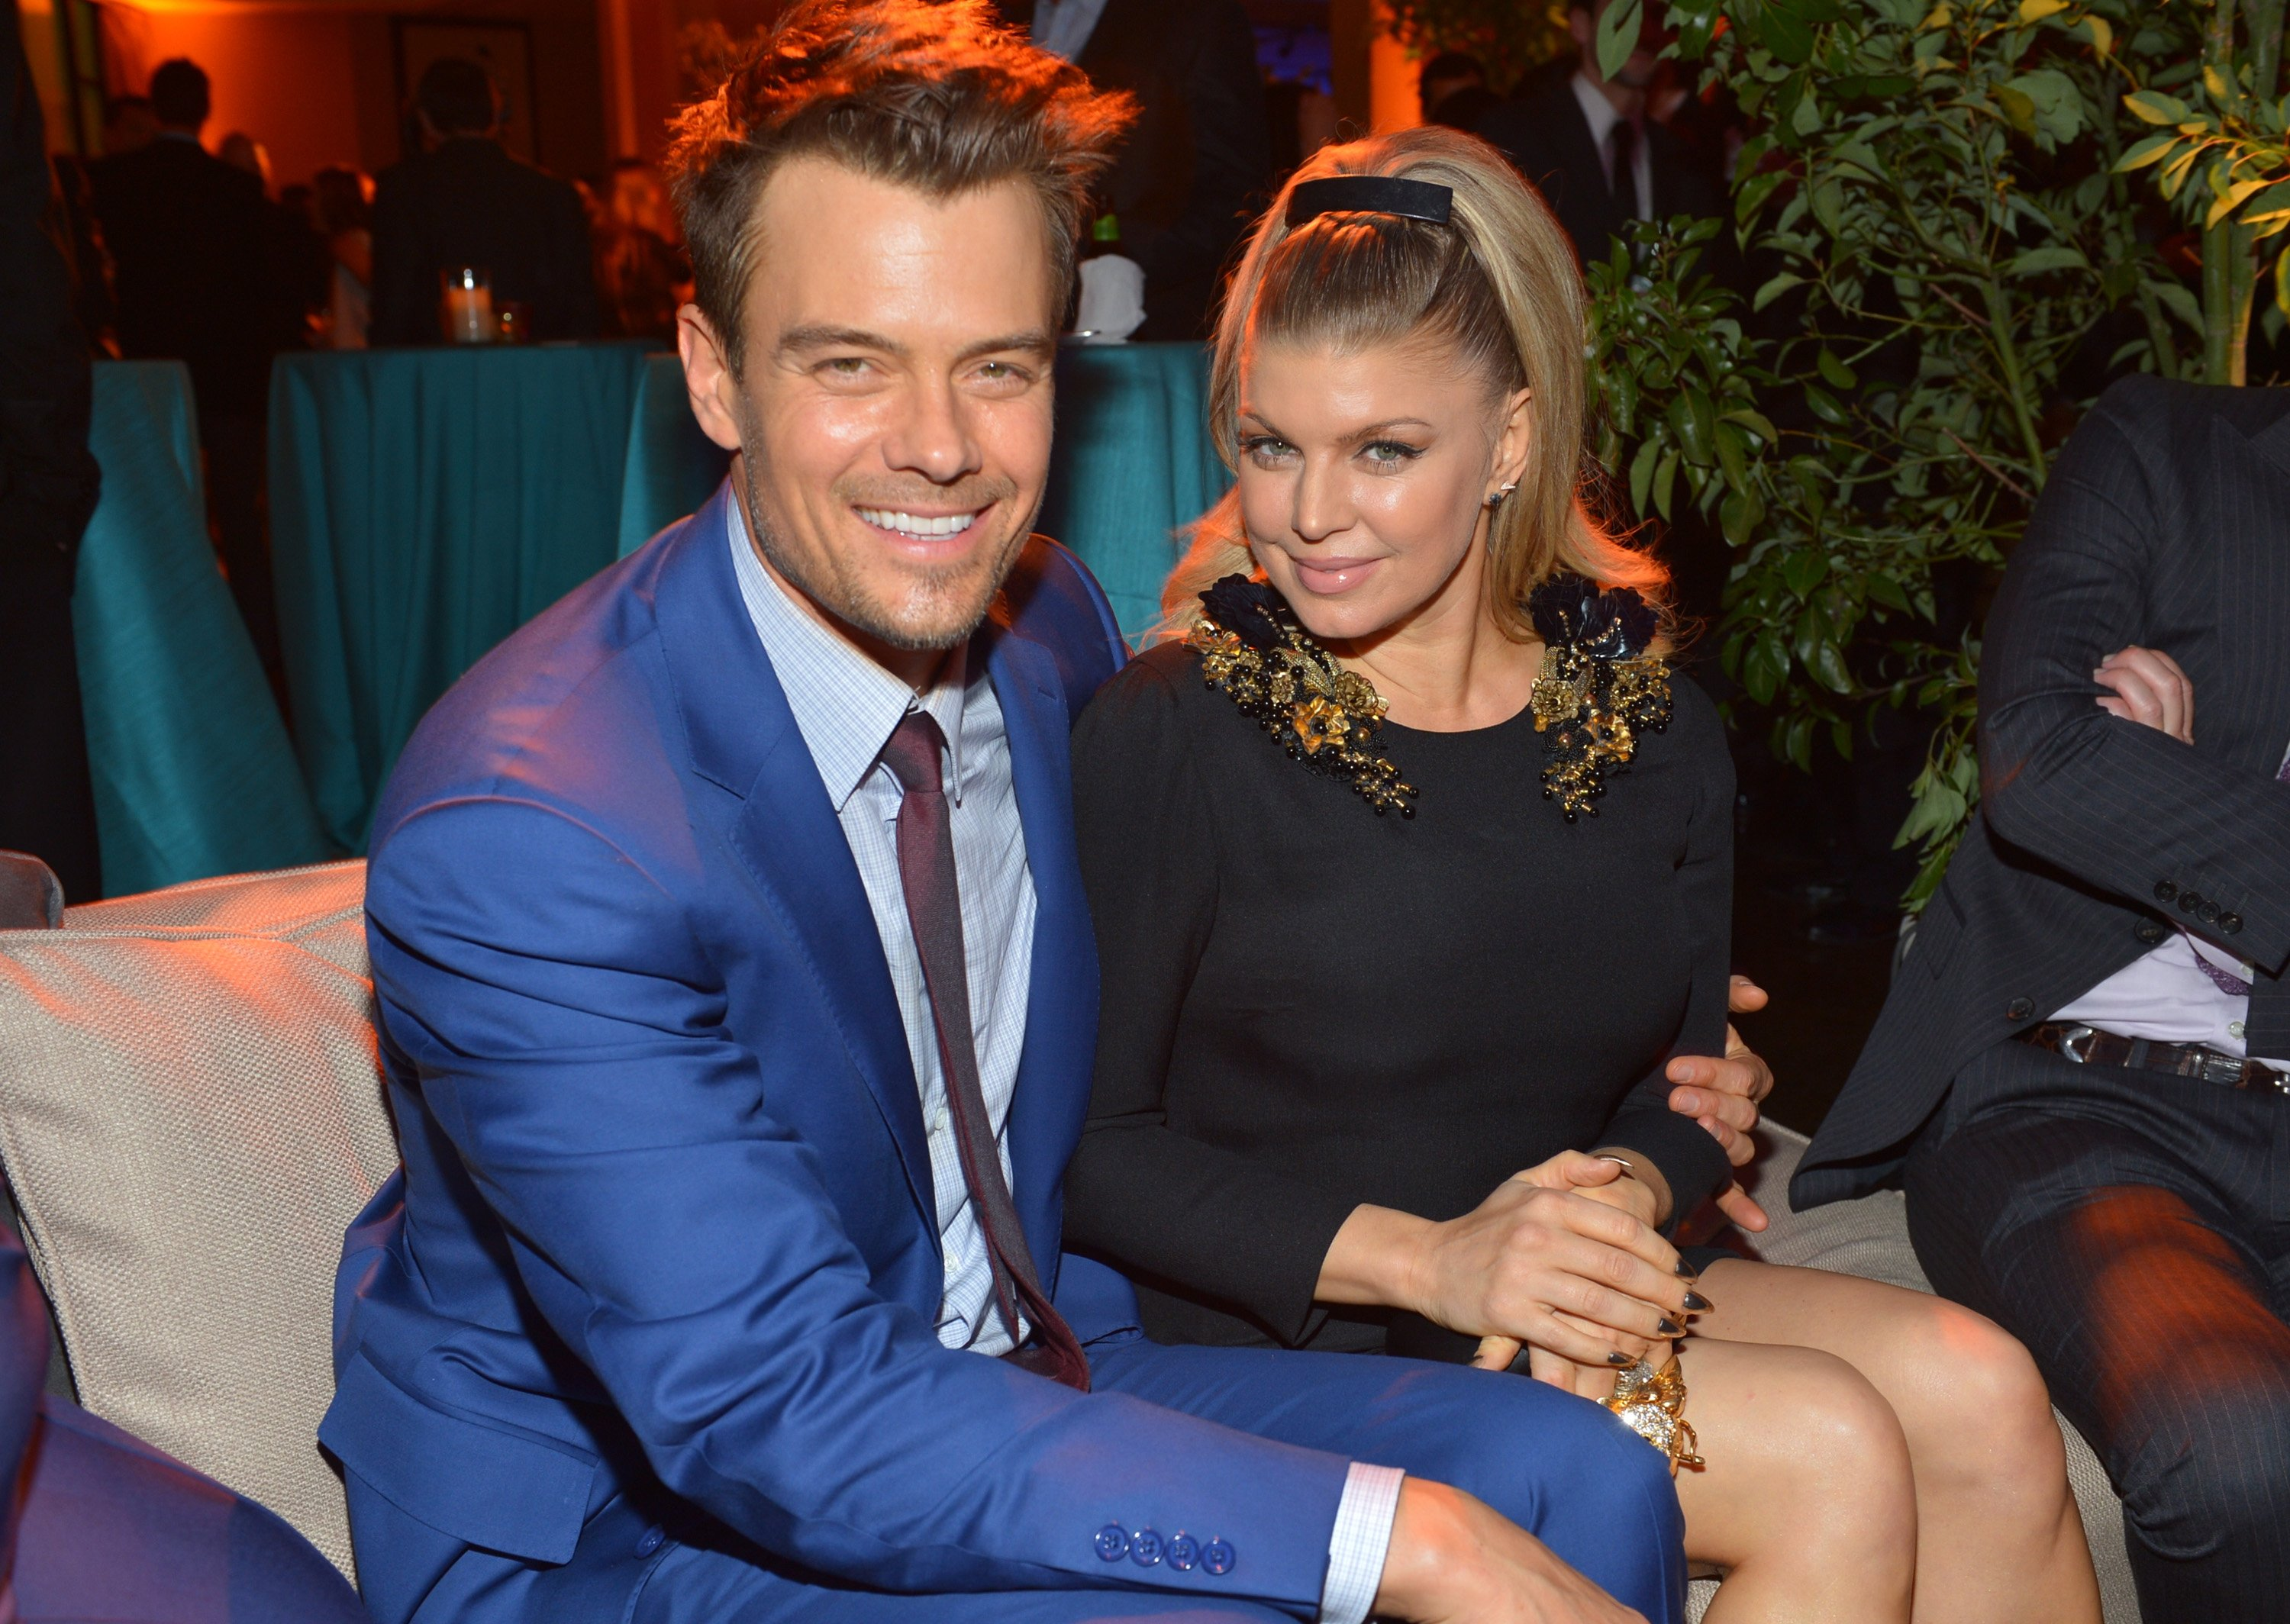 Image Credits: Getty Images | Fergie forgave Josh's infidelity